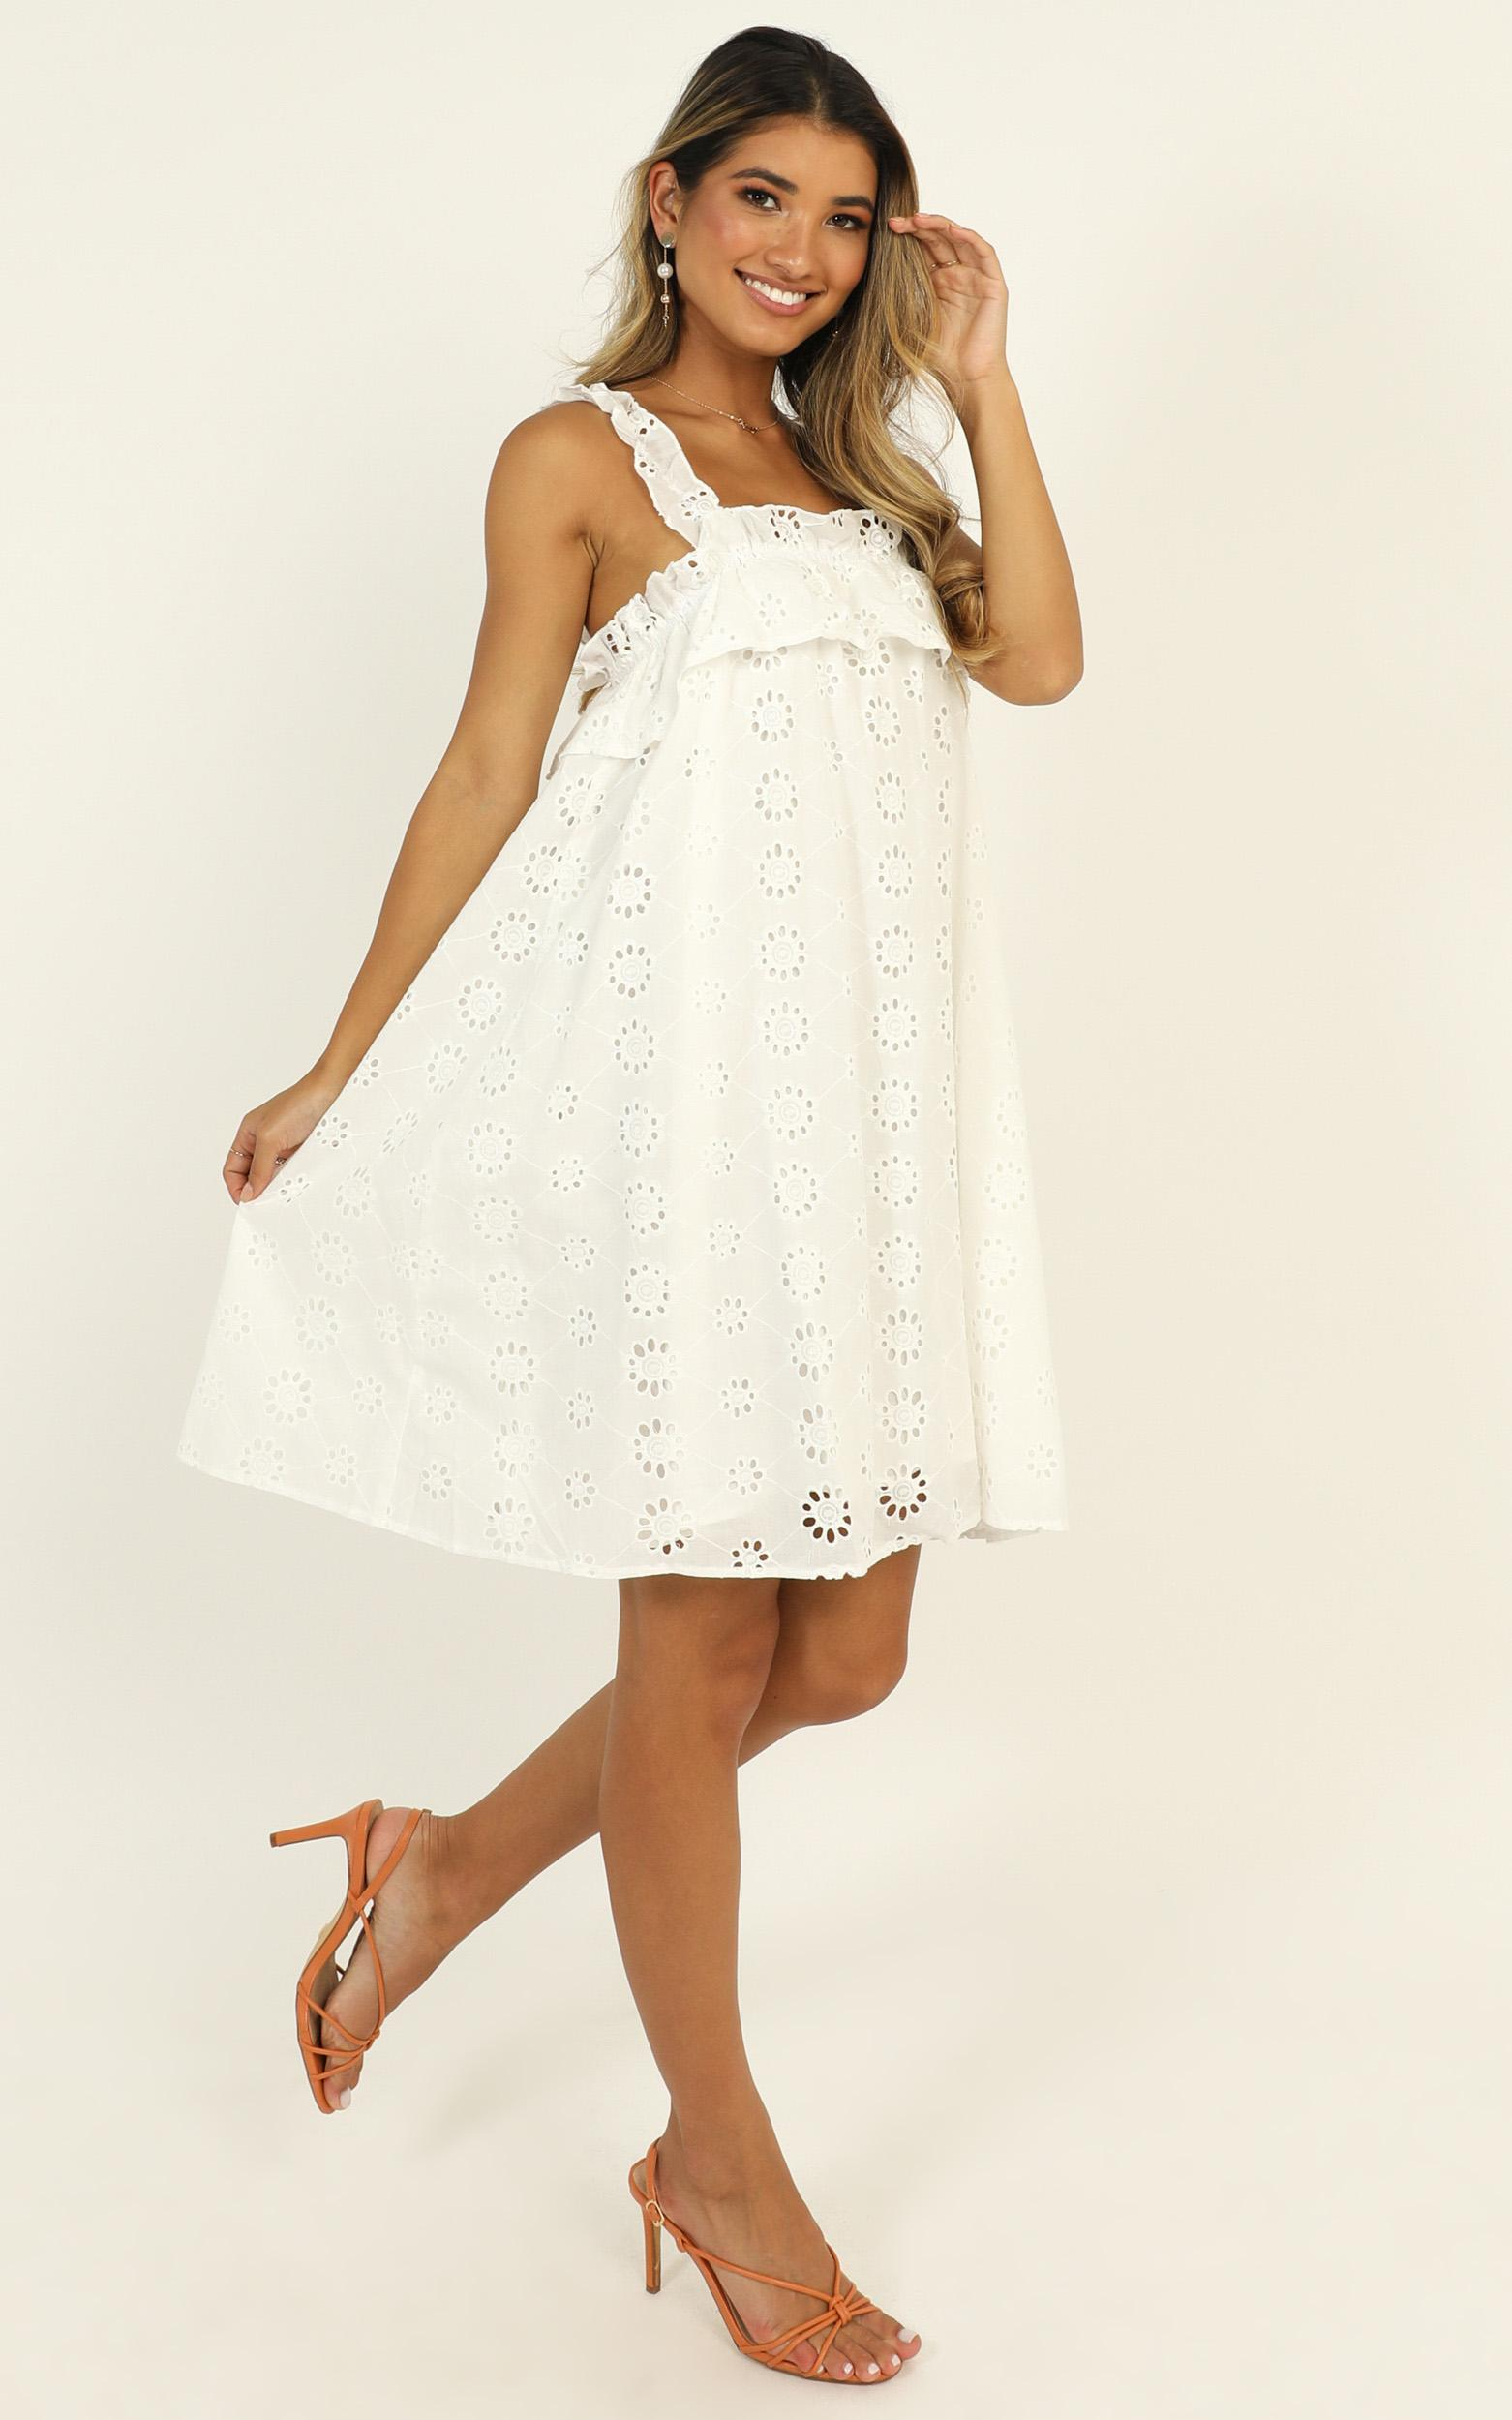 Next Summer dress in white - 14 (XL), White, hi-res image number null